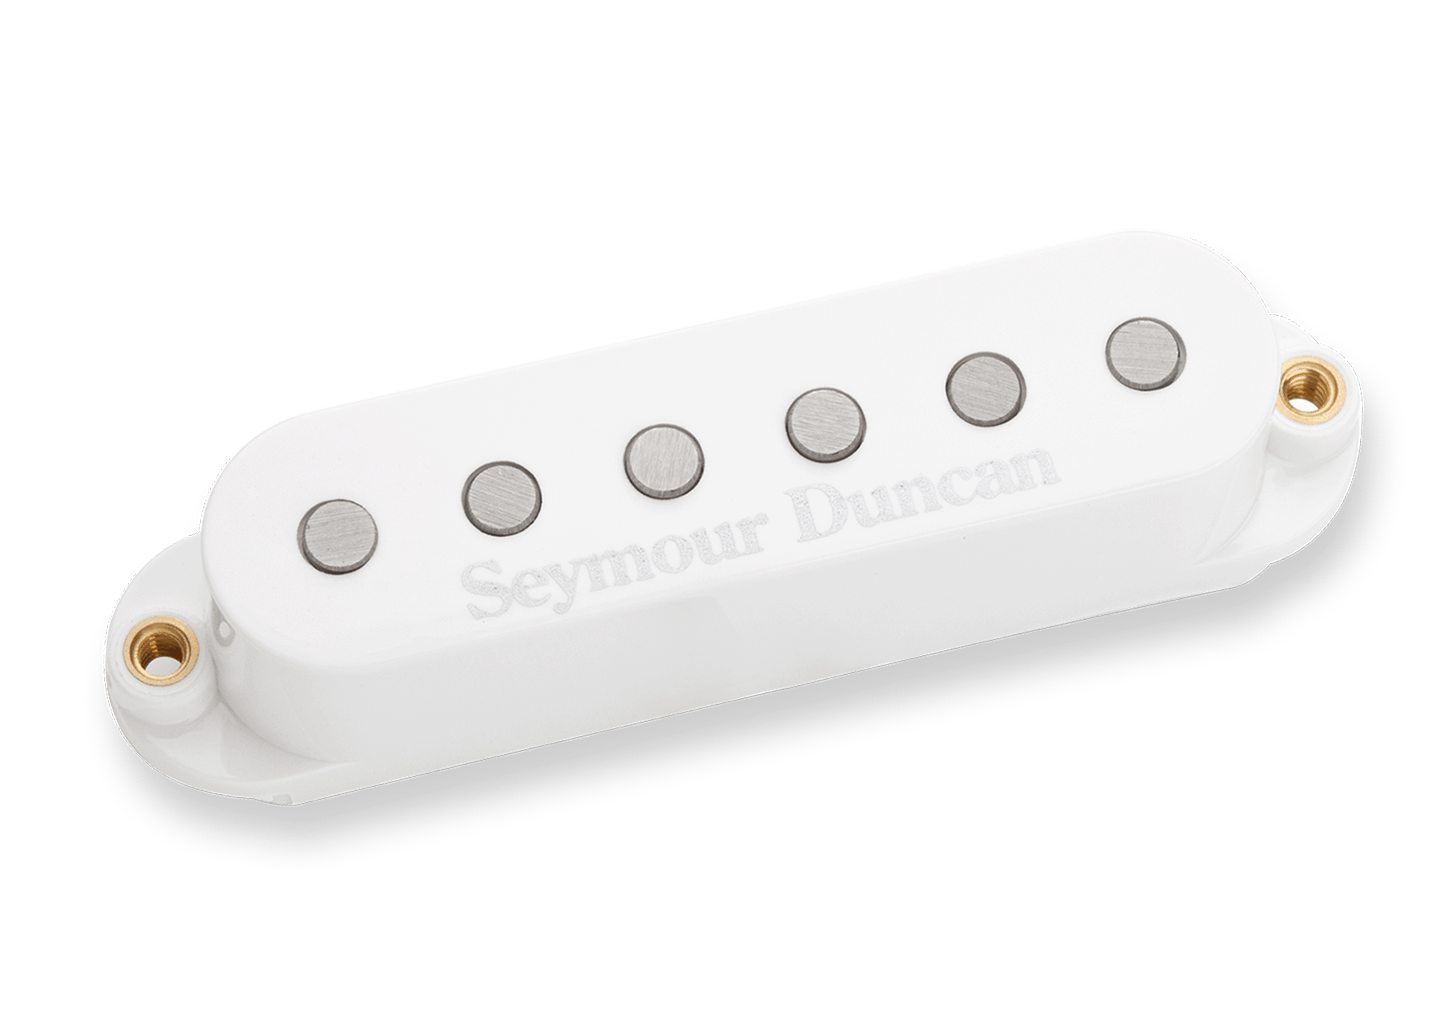 Noiseless Strat Pickups 11203 21 Wc